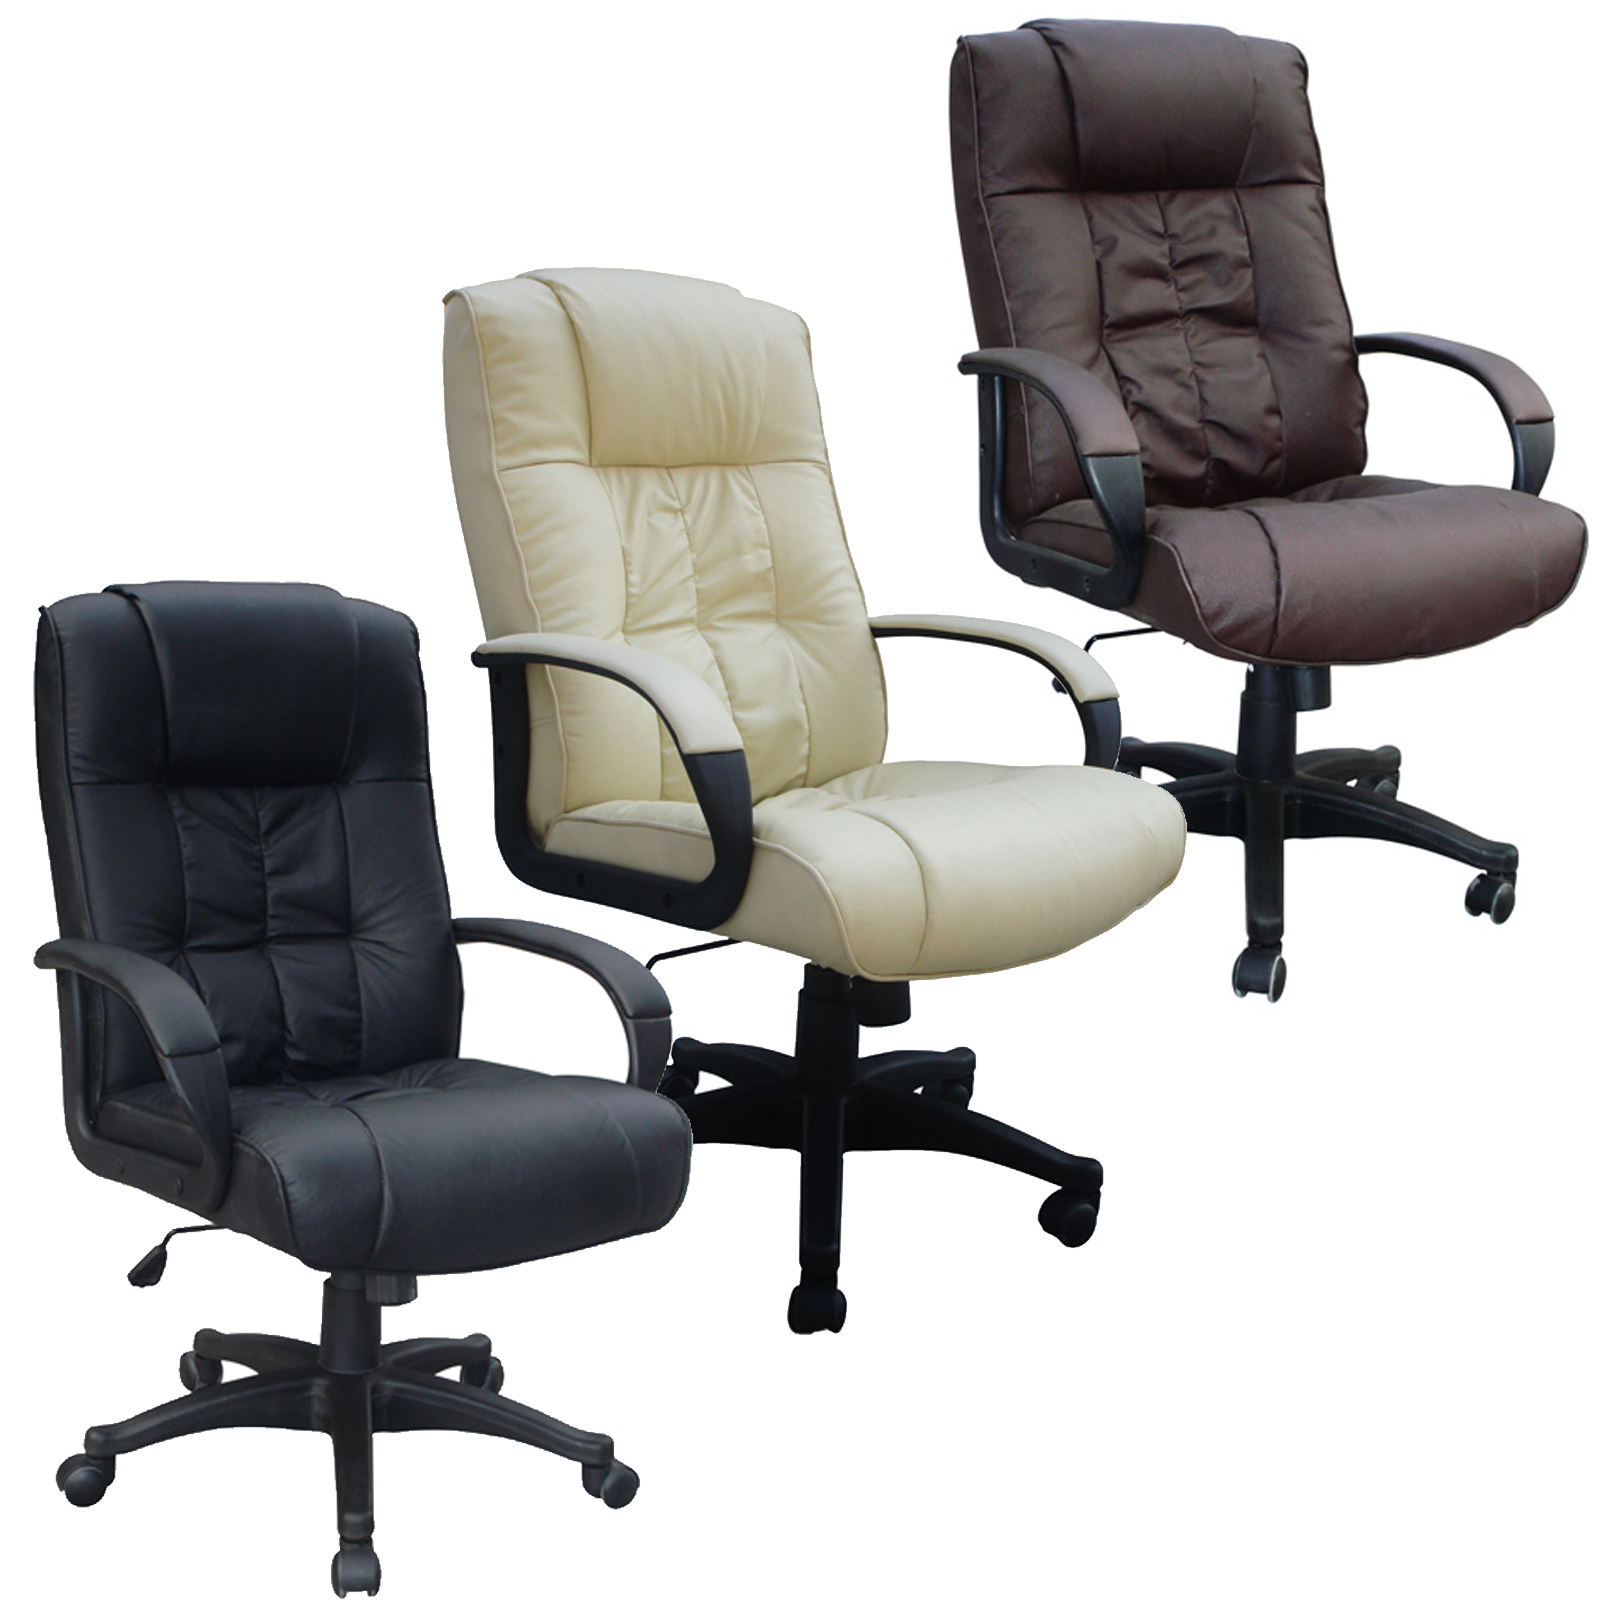 Swivel Desk Chairs Cow Split Leather High Back Office Chair Pc Computer Desk